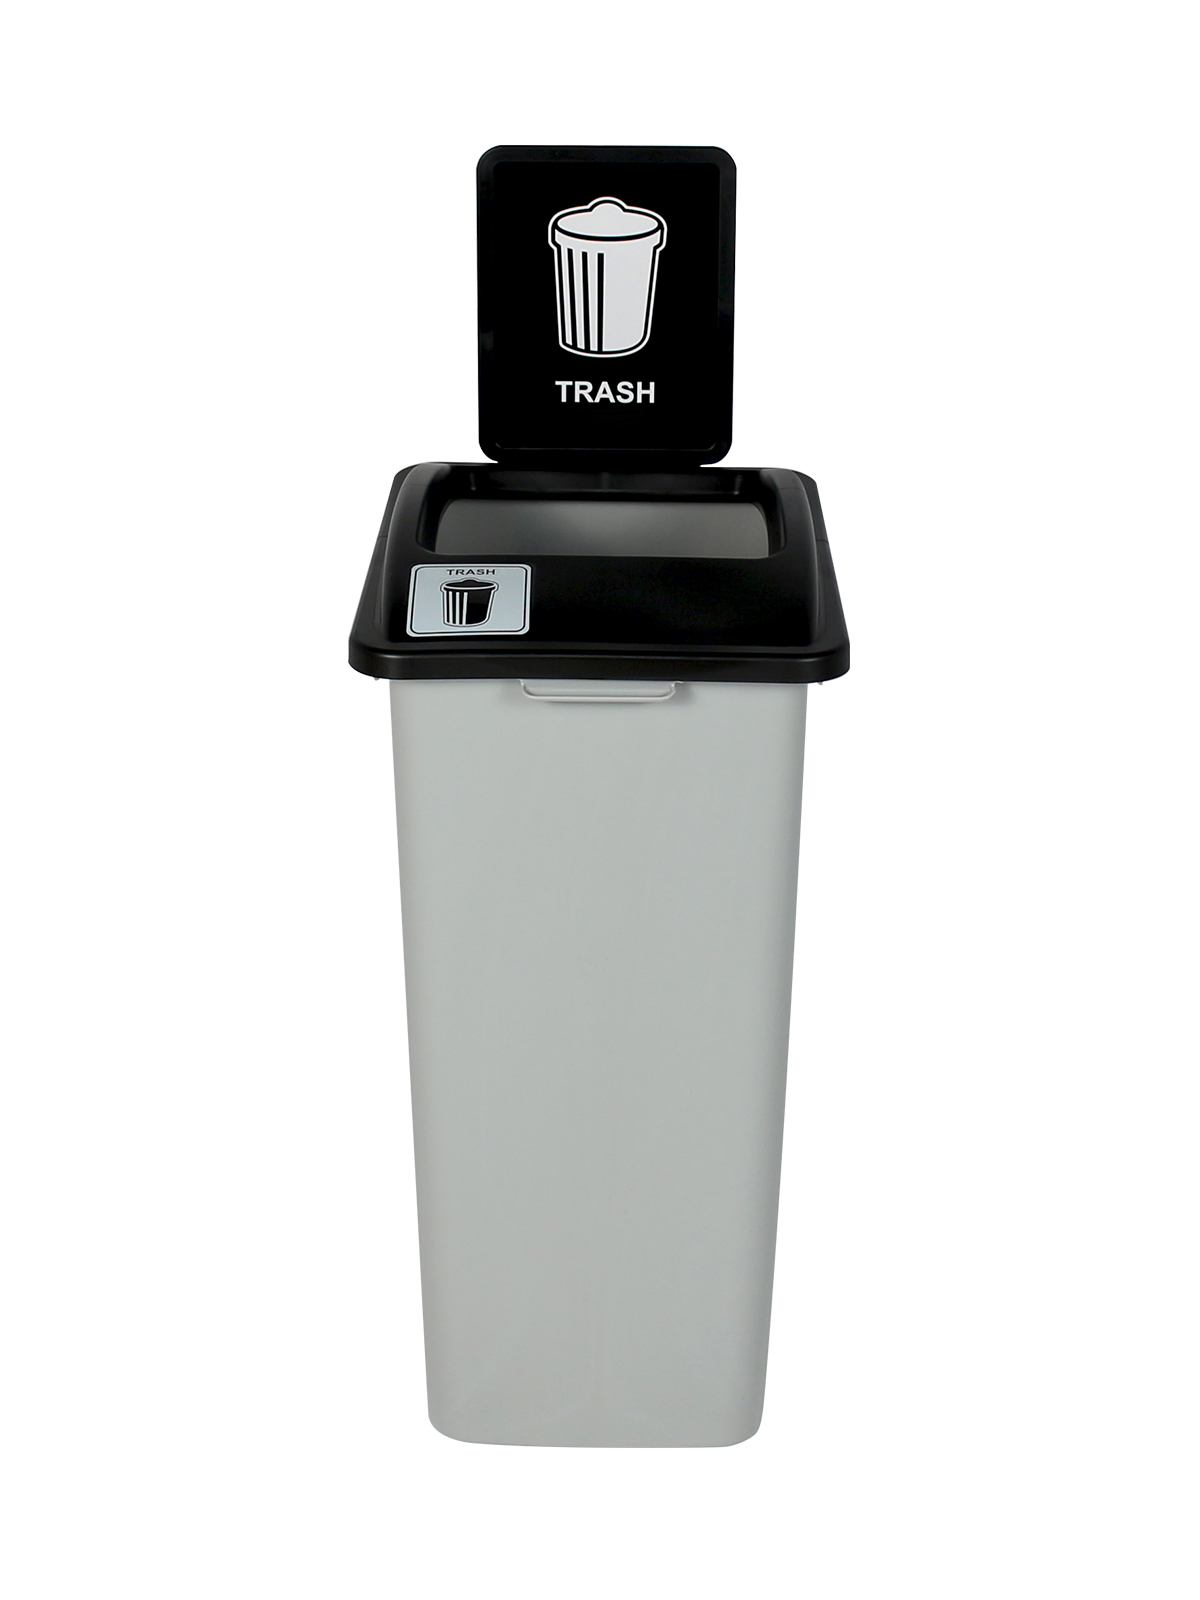 WASTE WATCHER XL - Single - Trash - Full - Grey-Black